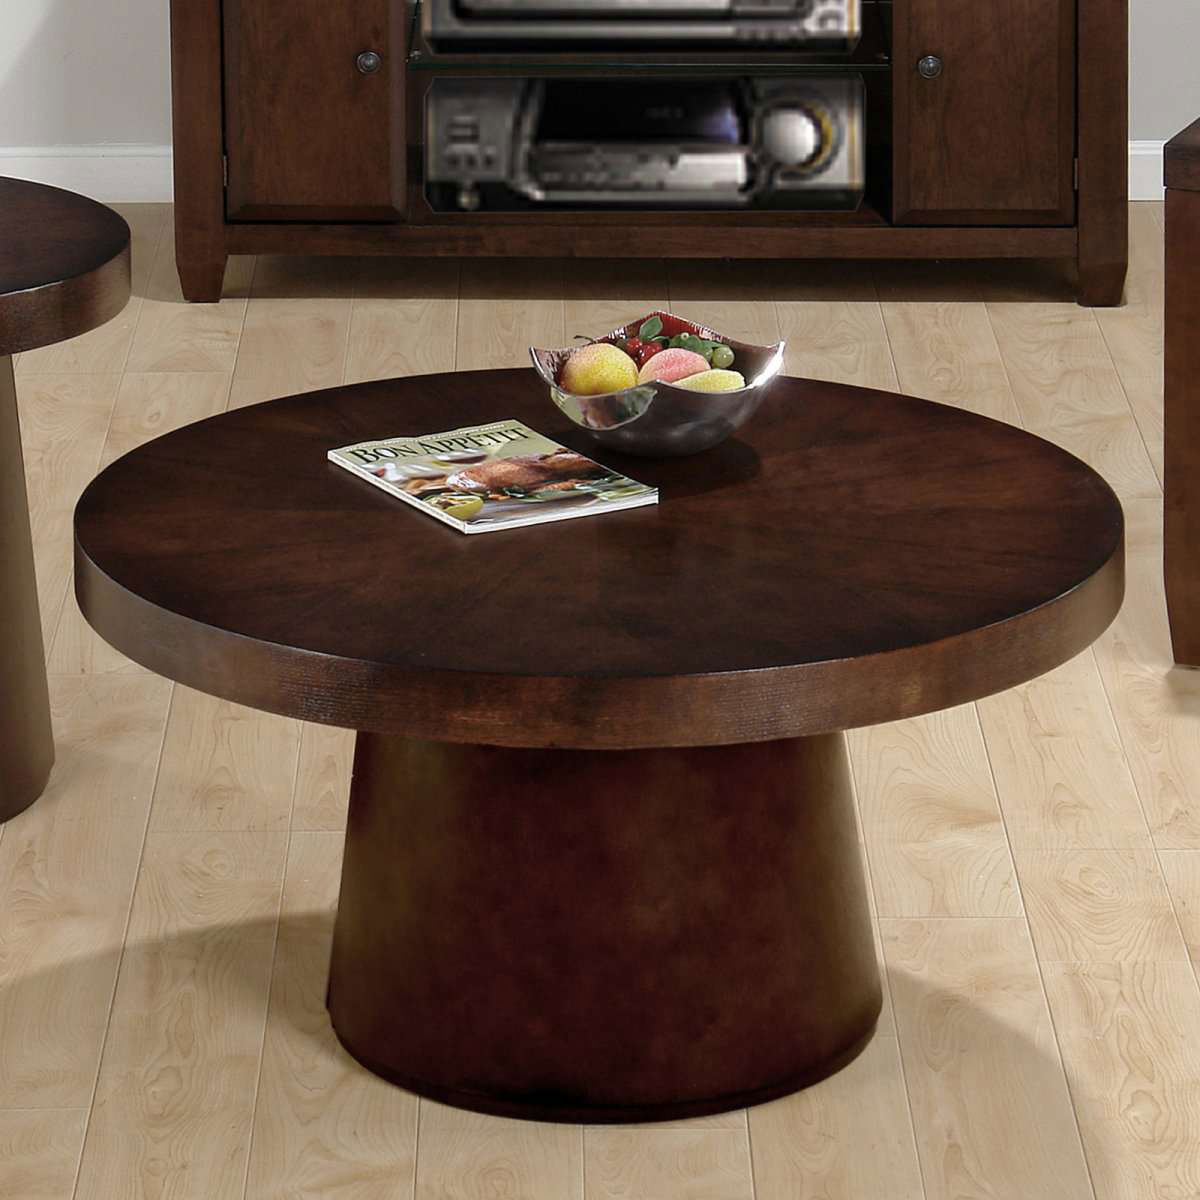 living room table design 9 inspirations of small coffee tables 17612